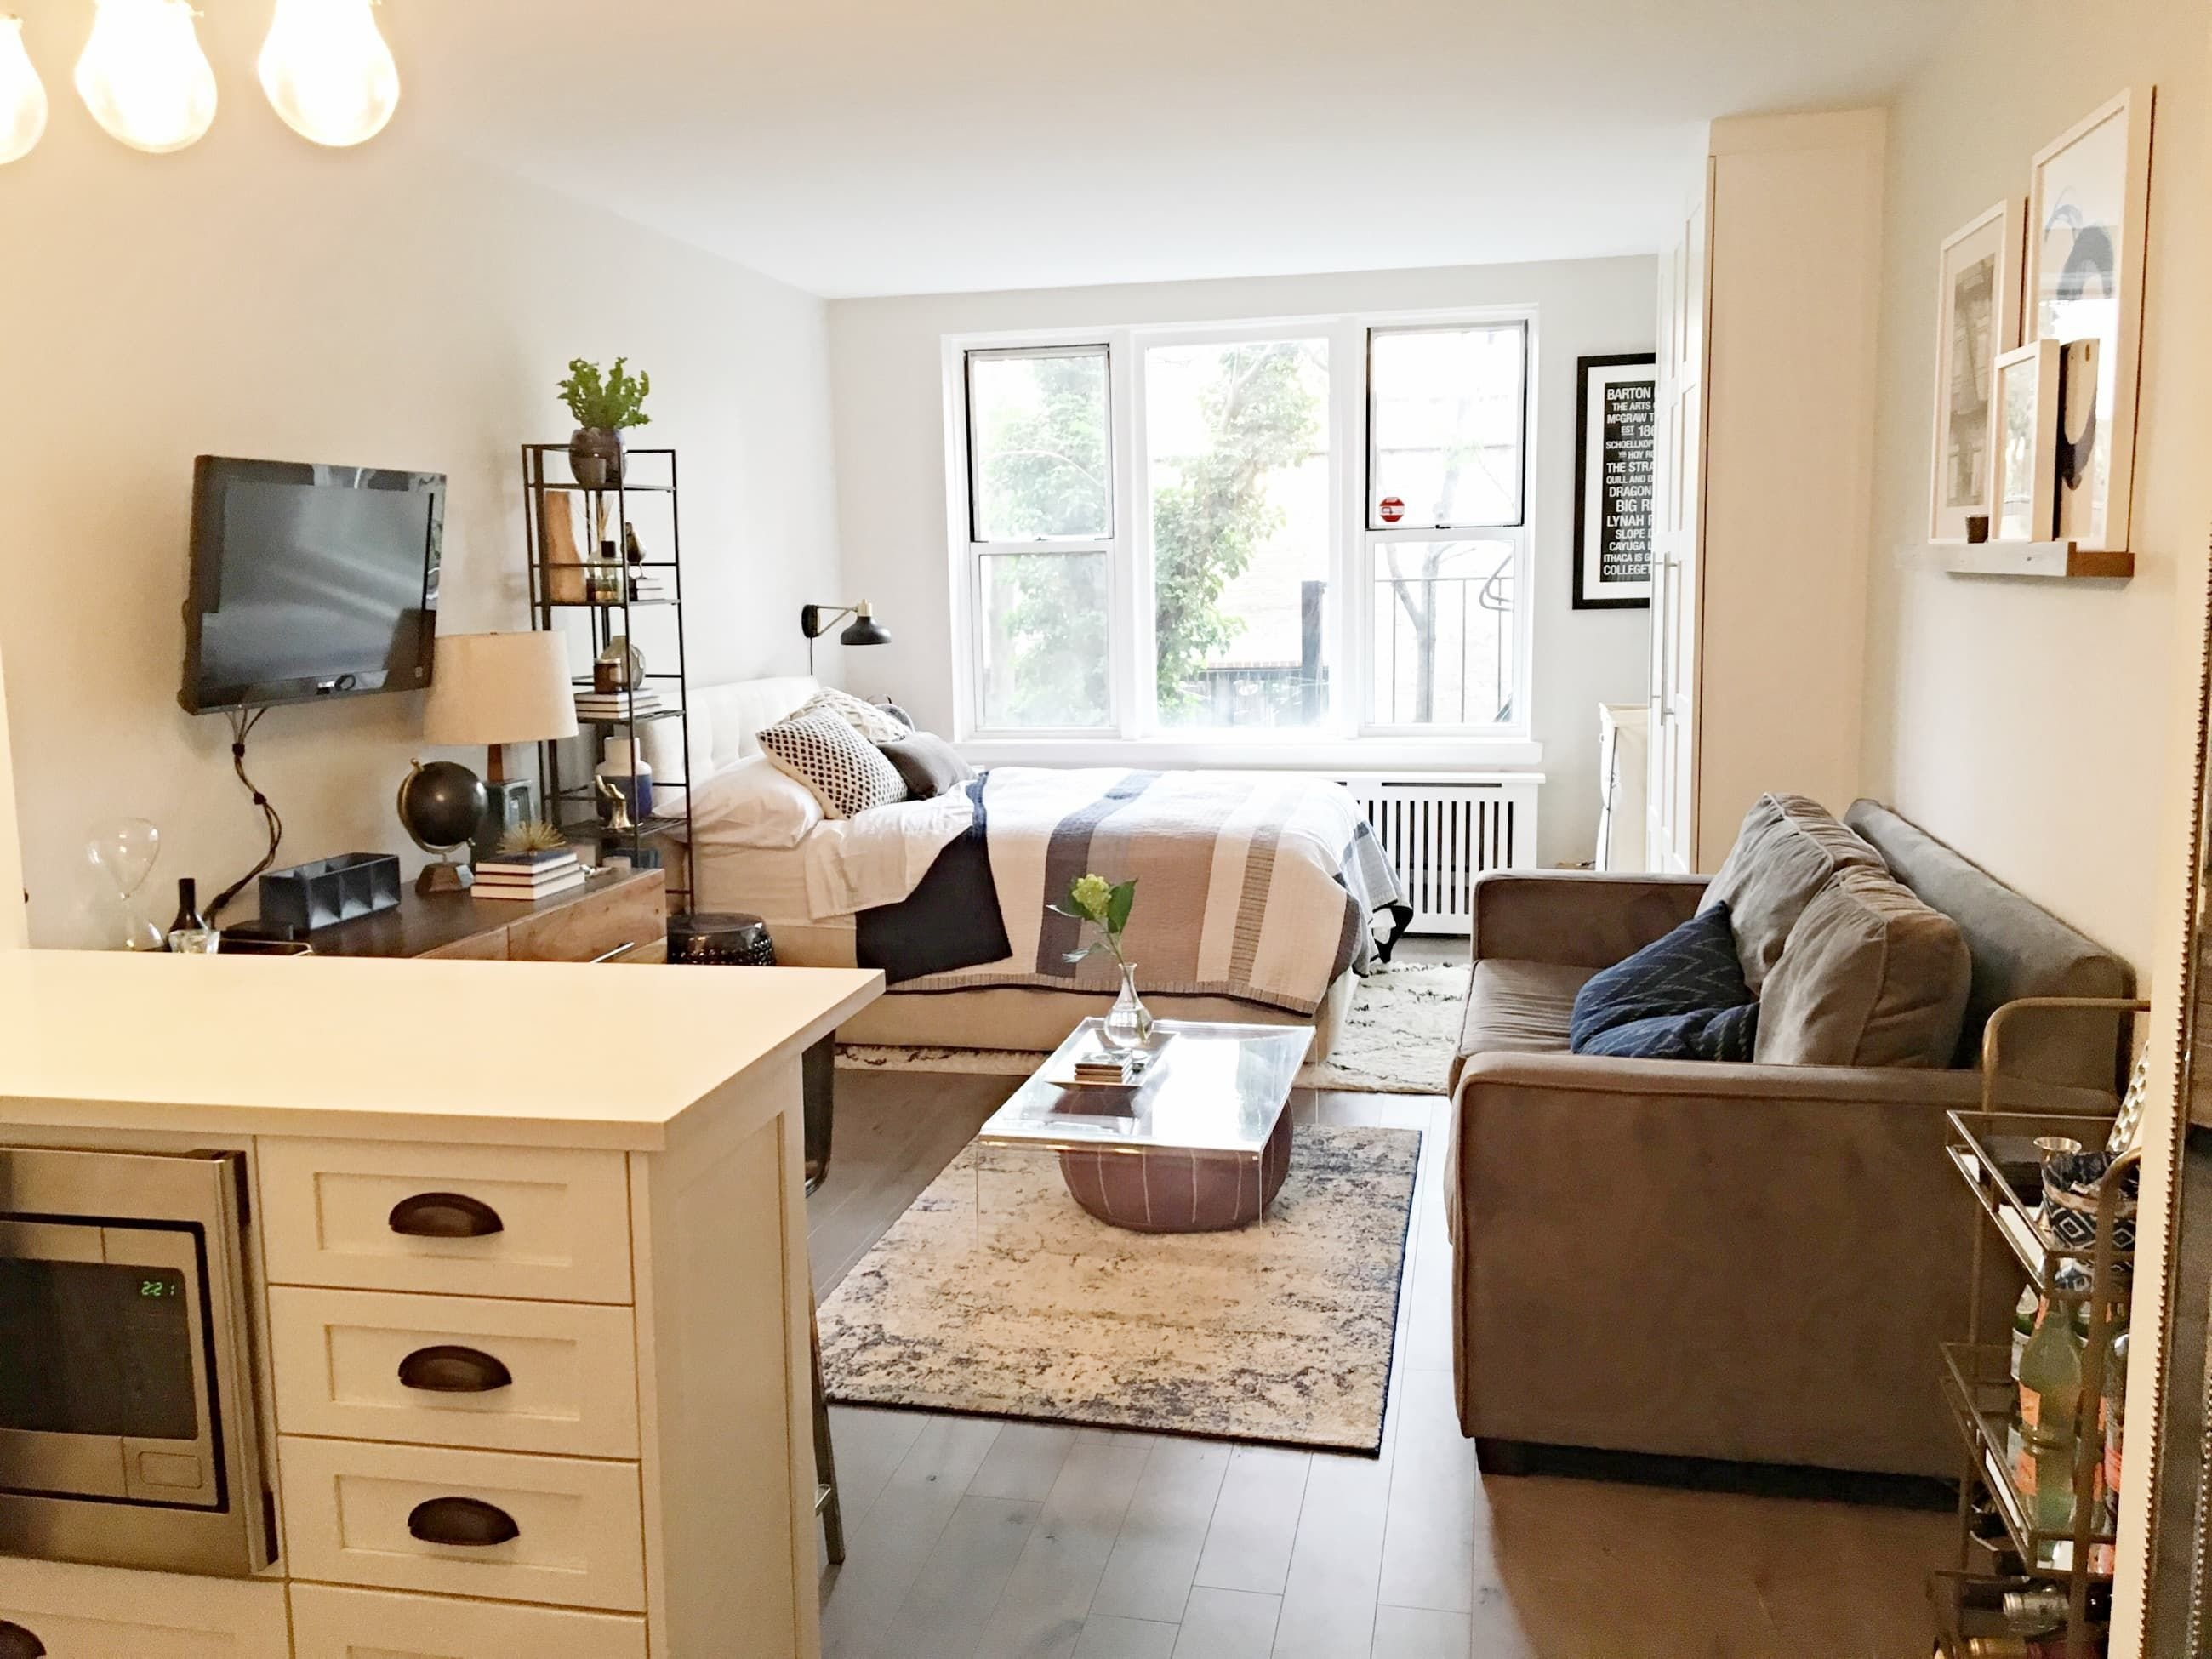 Best This Complete Studio Makeover Went From Gut To Gorgeous Ideas For The House Studio Apartment With Pictures